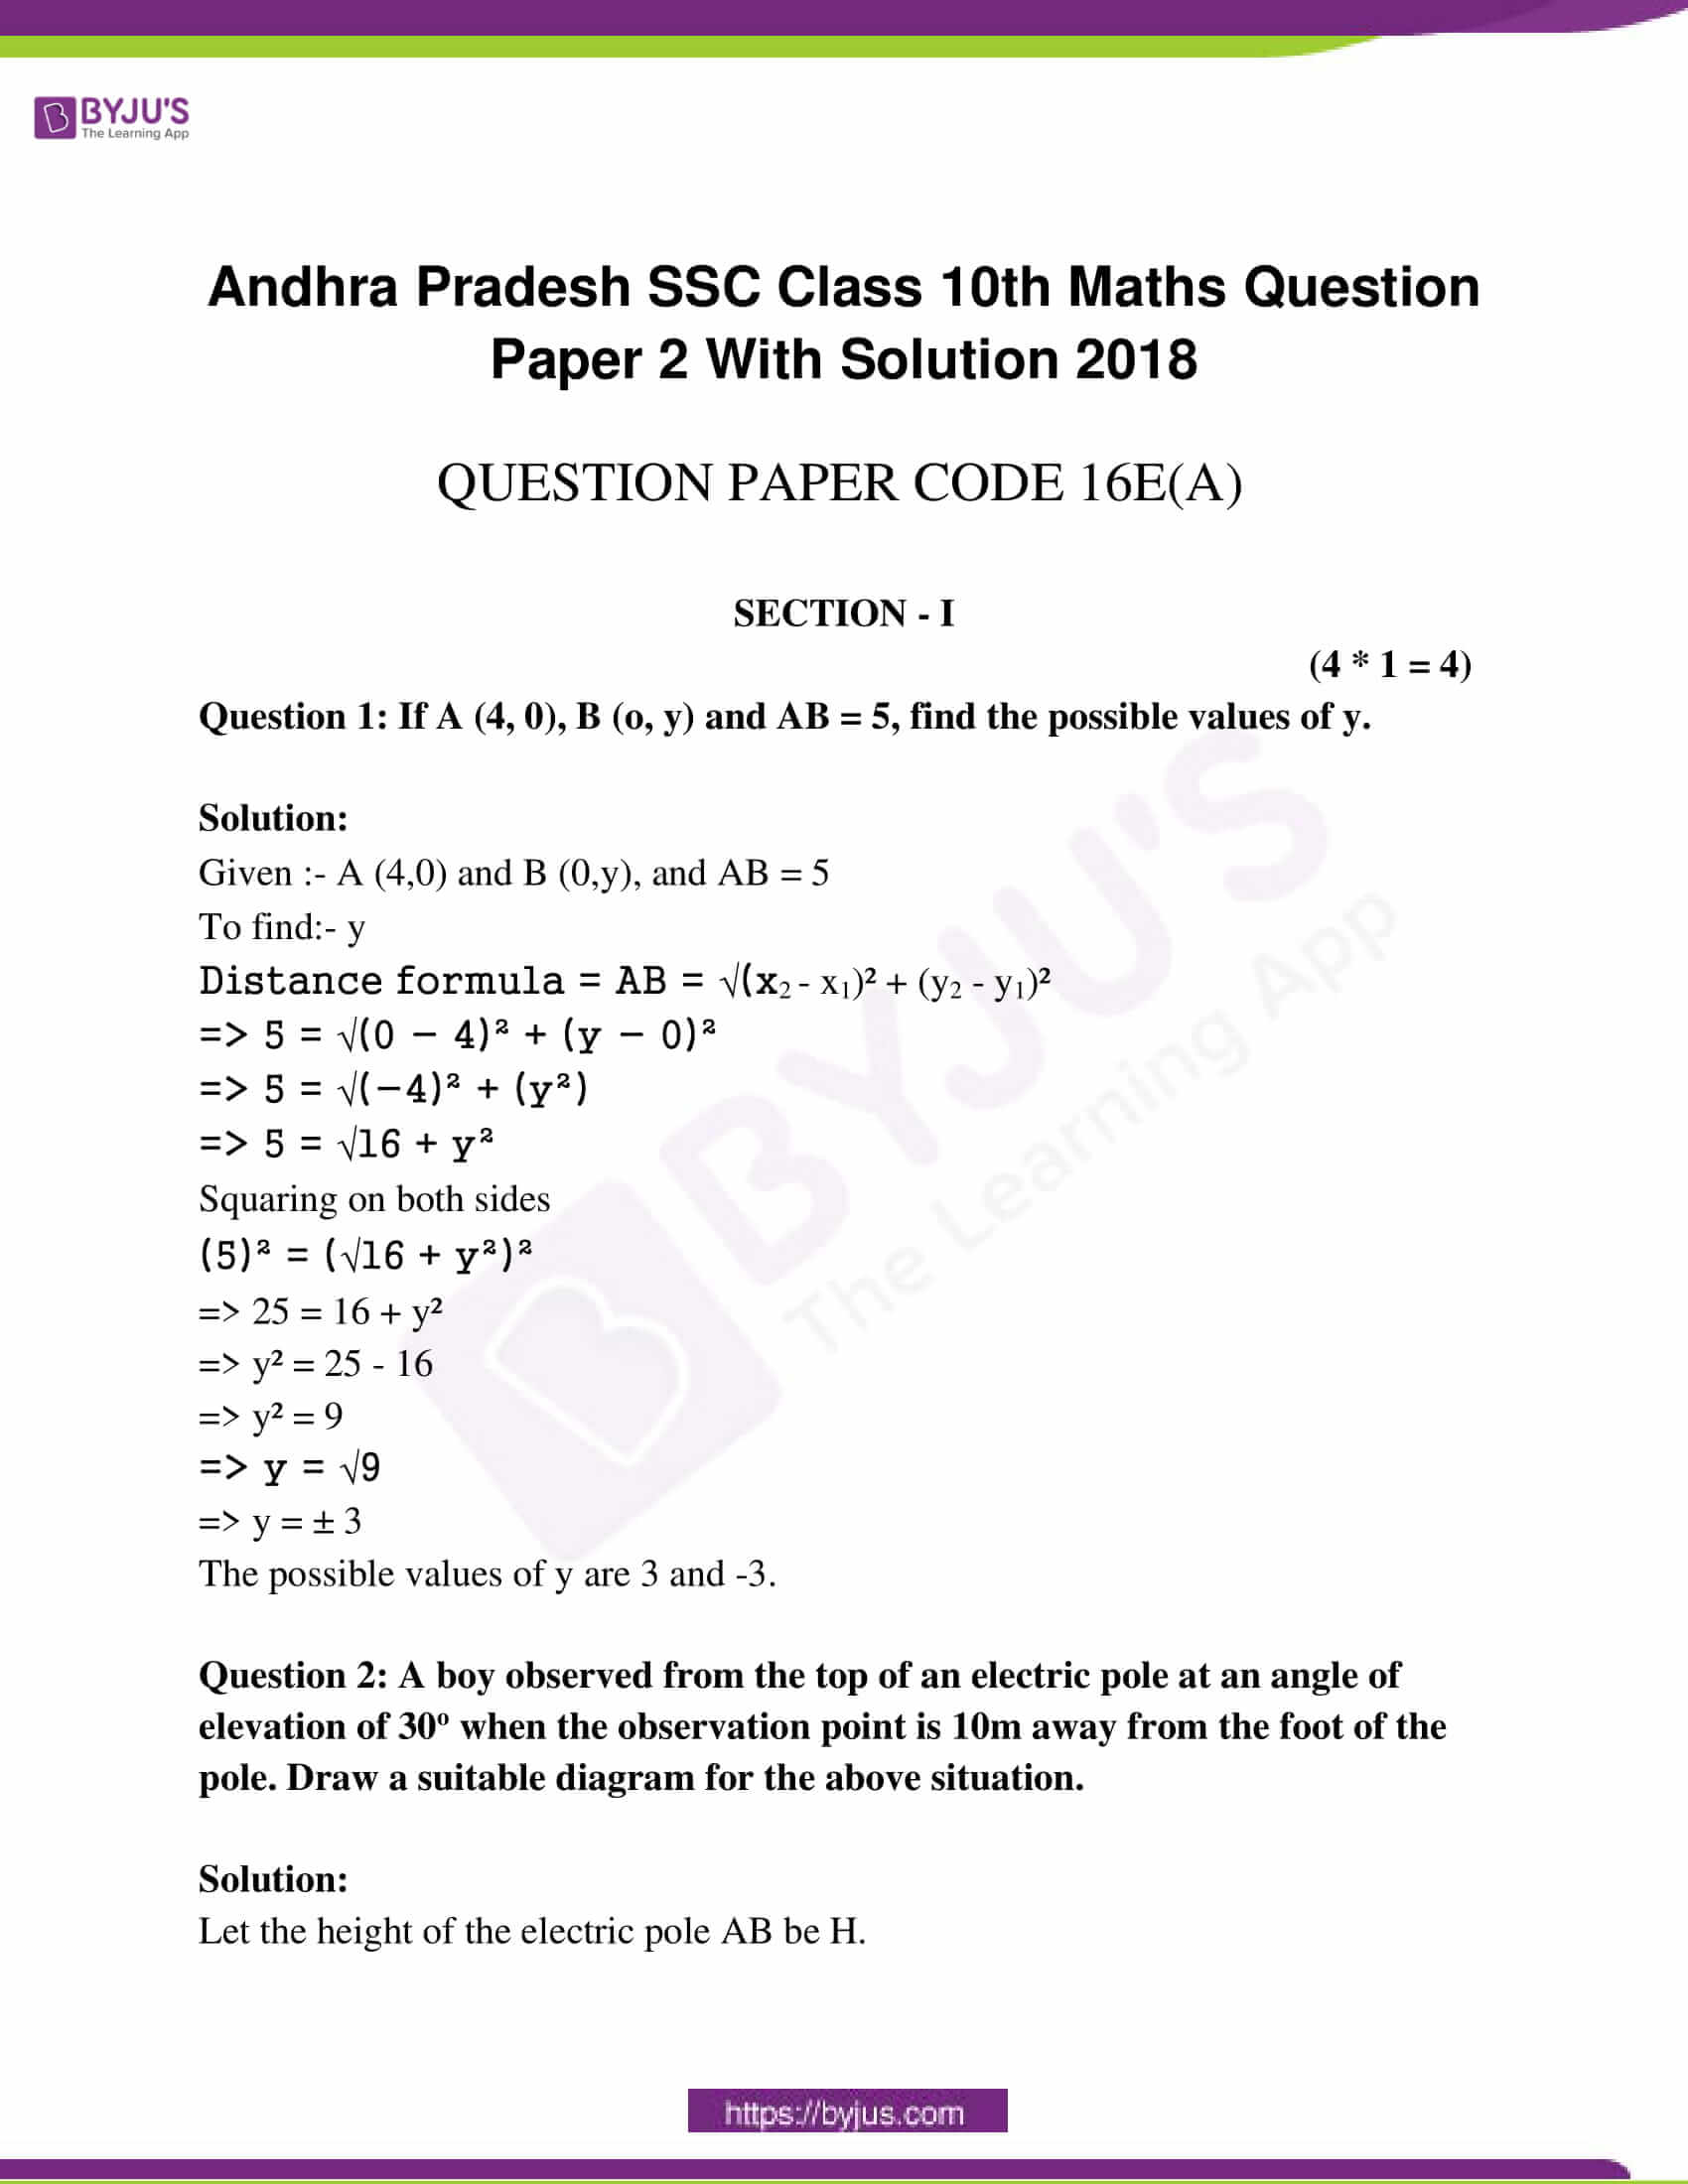 ap class 10 maths question paper 2 sol march 2018 01